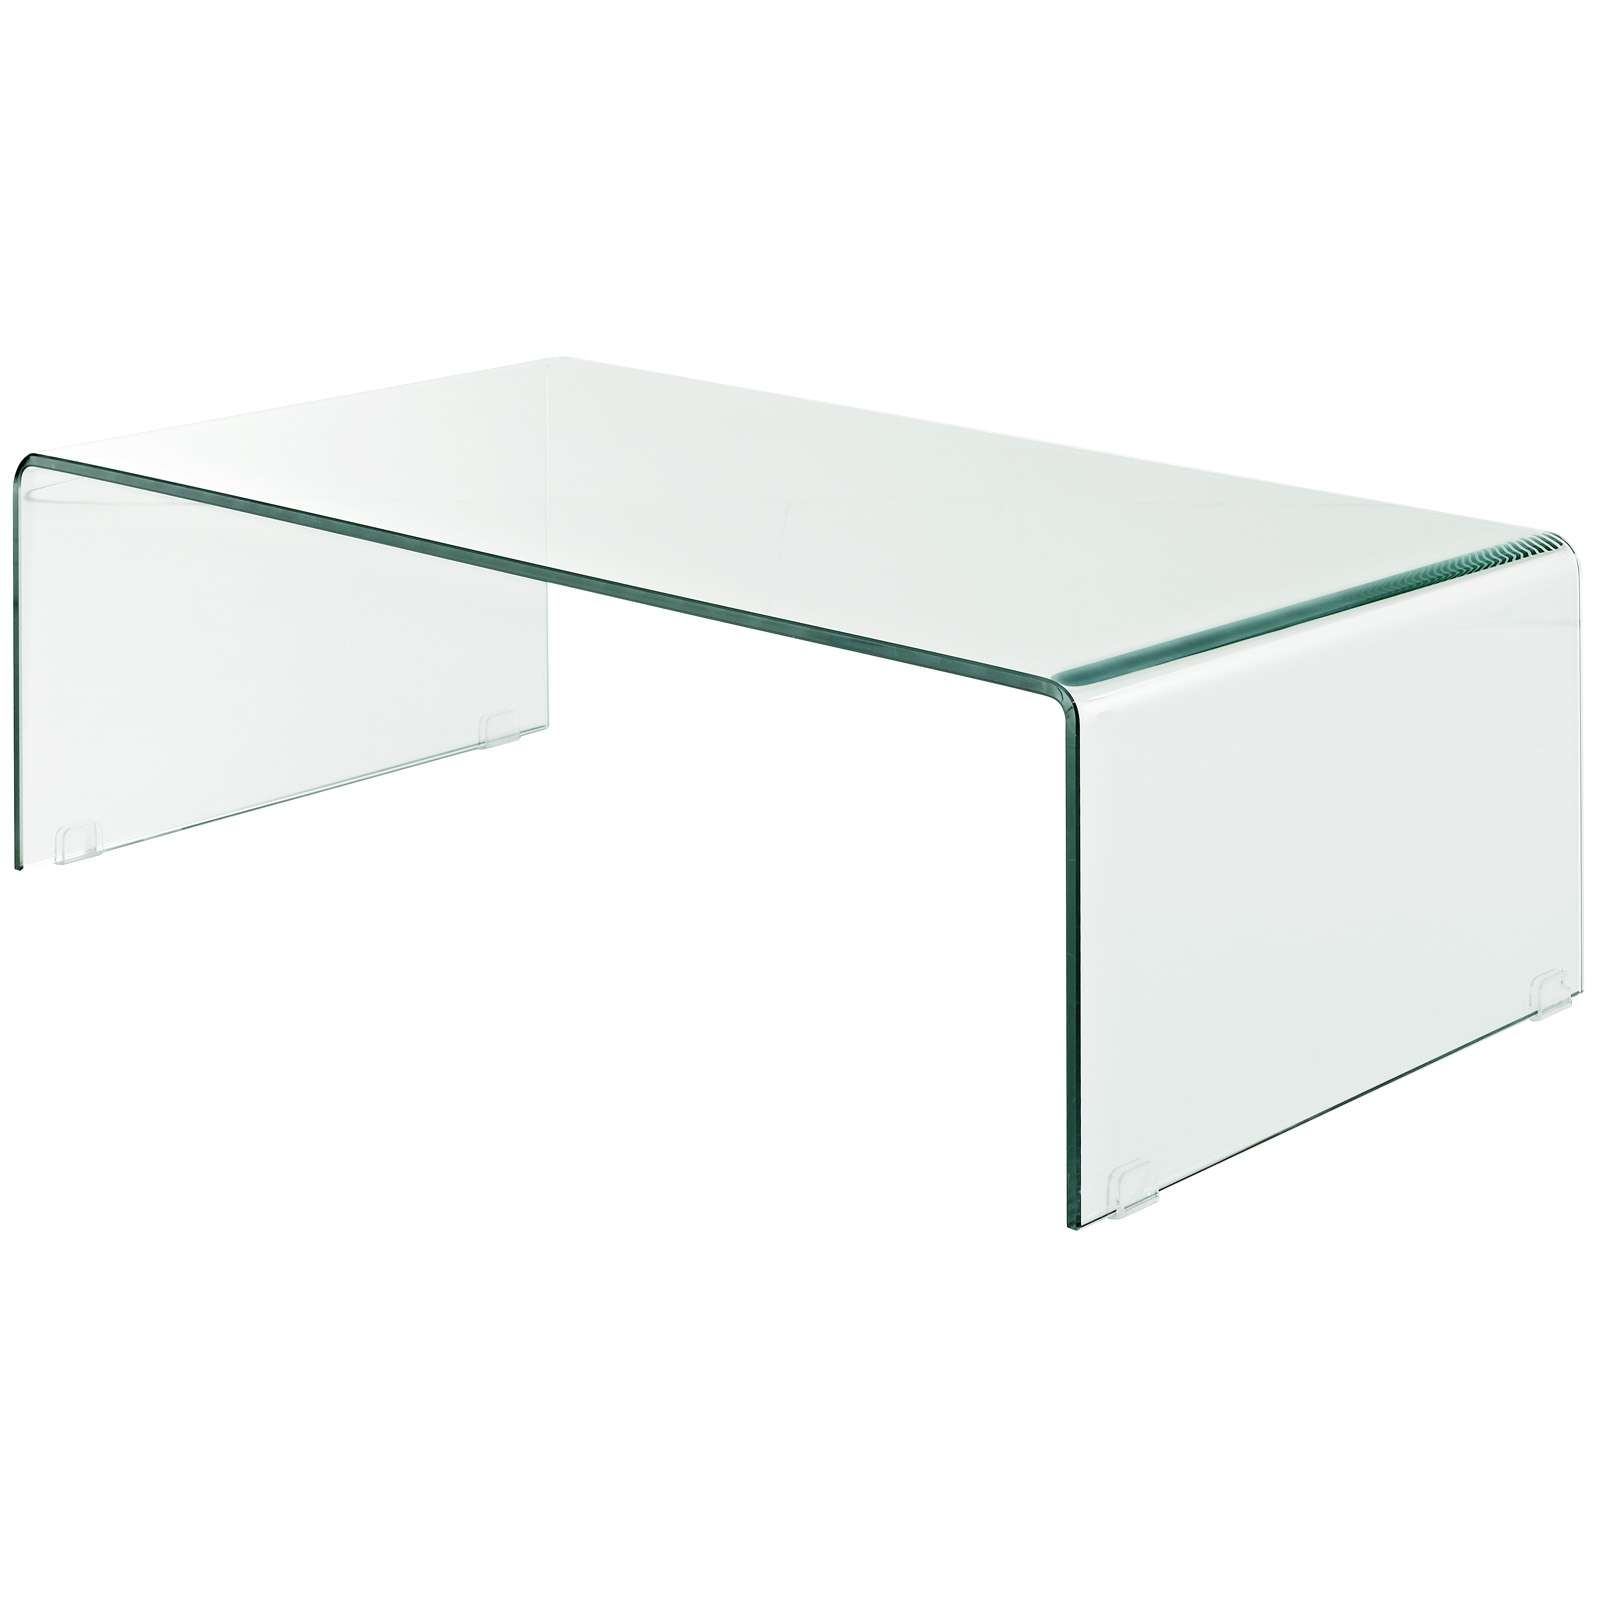 Widely Used Simple Glass Coffee Tables With Regard To Decorations : Modern Furniture Store Deals Tags Tempered Clear (View 14 of 20)